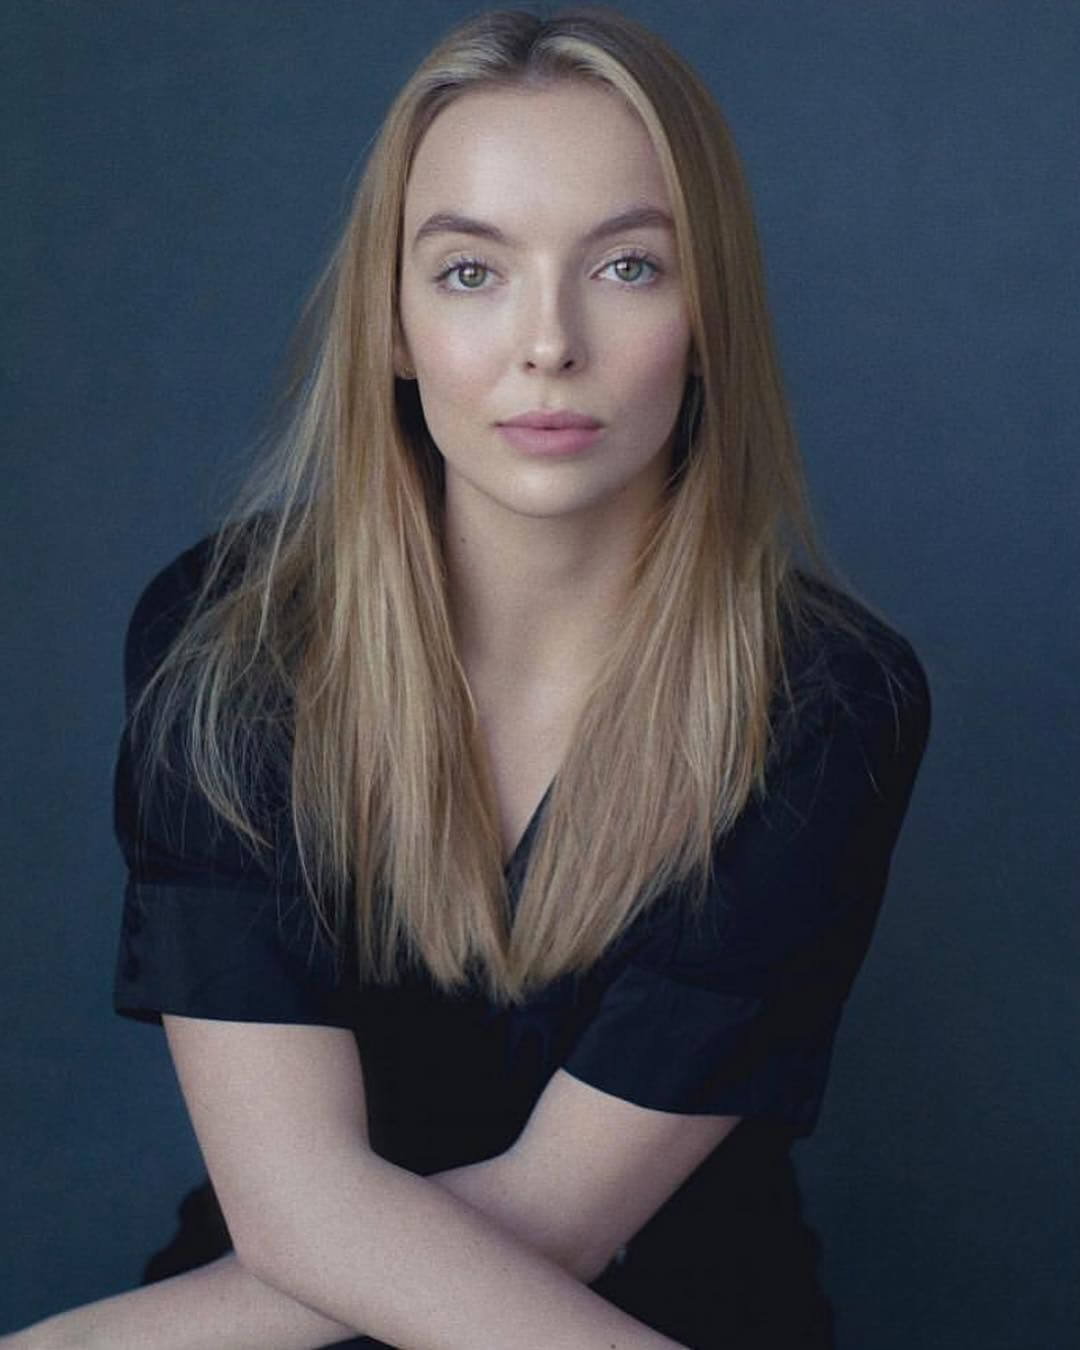 Jodie Comer is a talented actress who won an Emmy last year